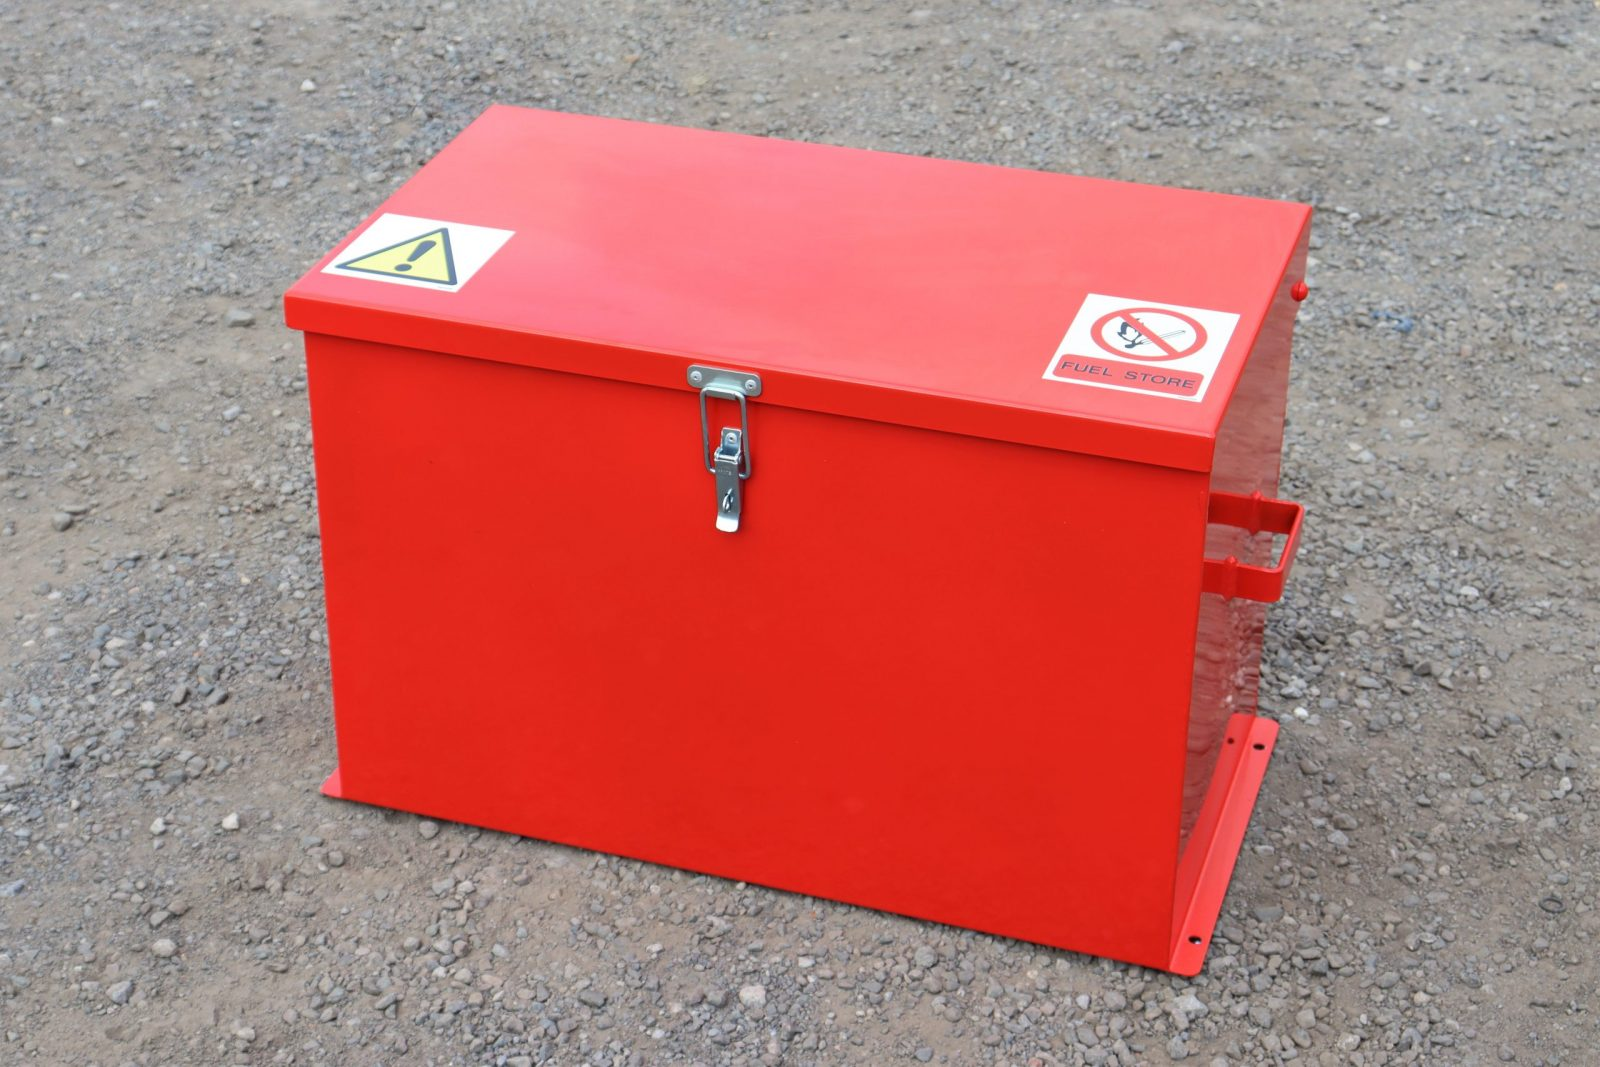 The VFSJC fuel store from VALE Engineering can hold up to four 'army-style' Jerry cans containing petrol or diesel.